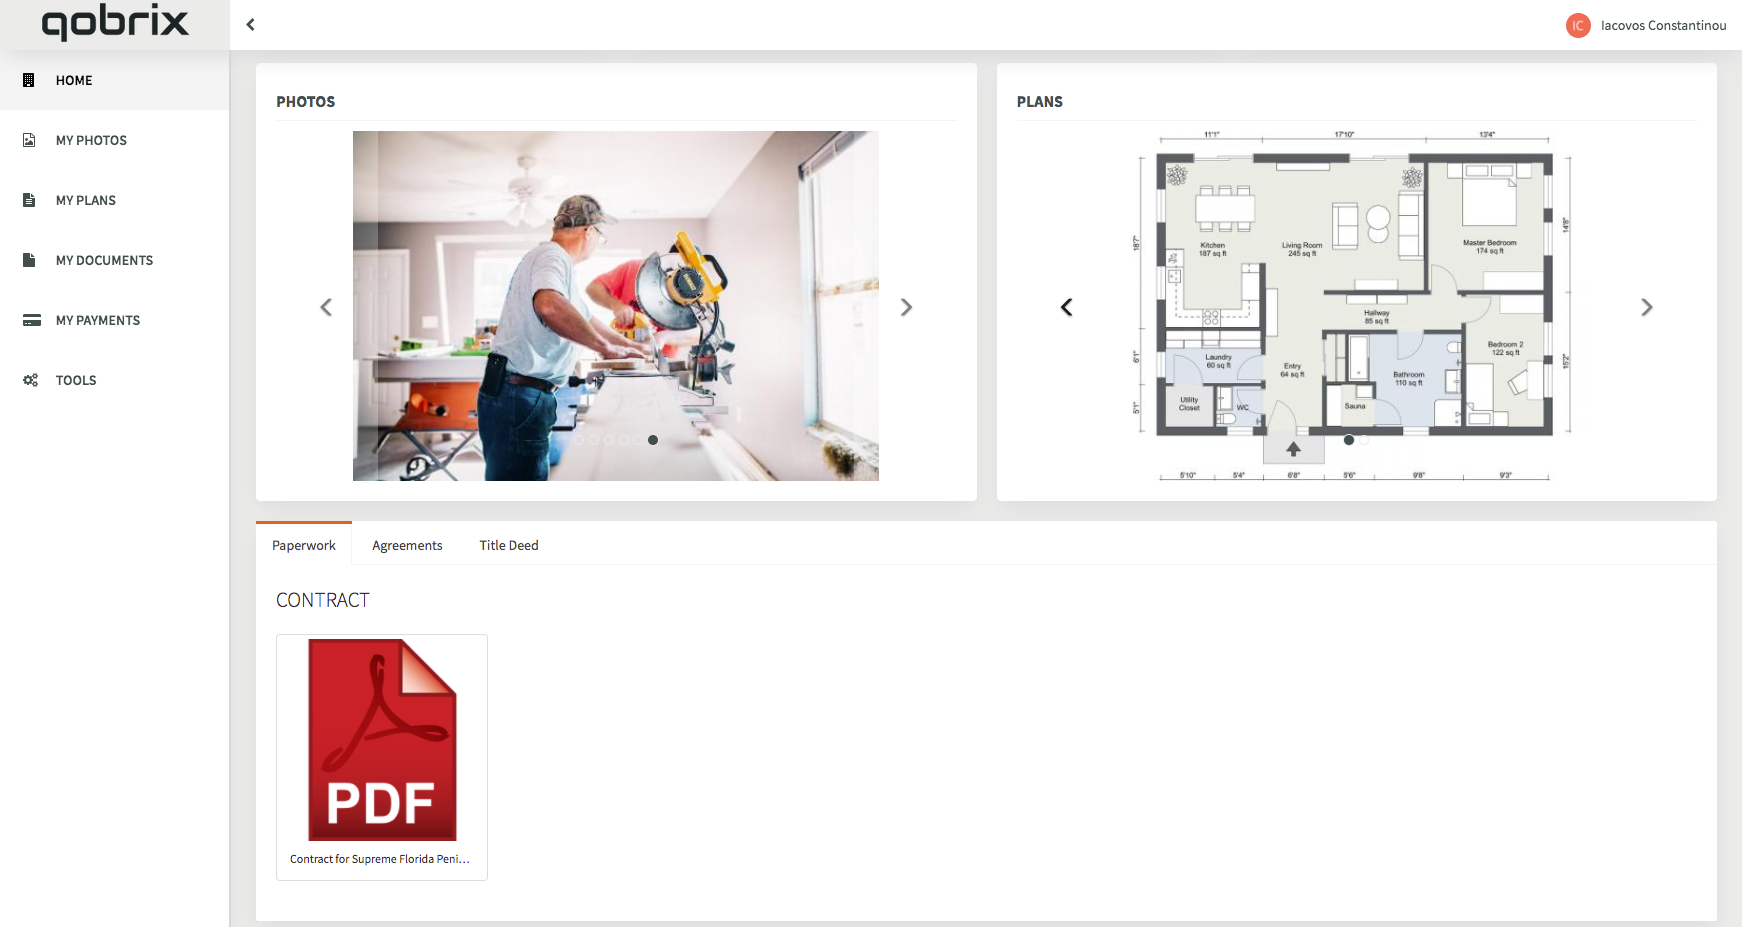 Real Estate Client Portal Dashboard with property photos, plans and documents